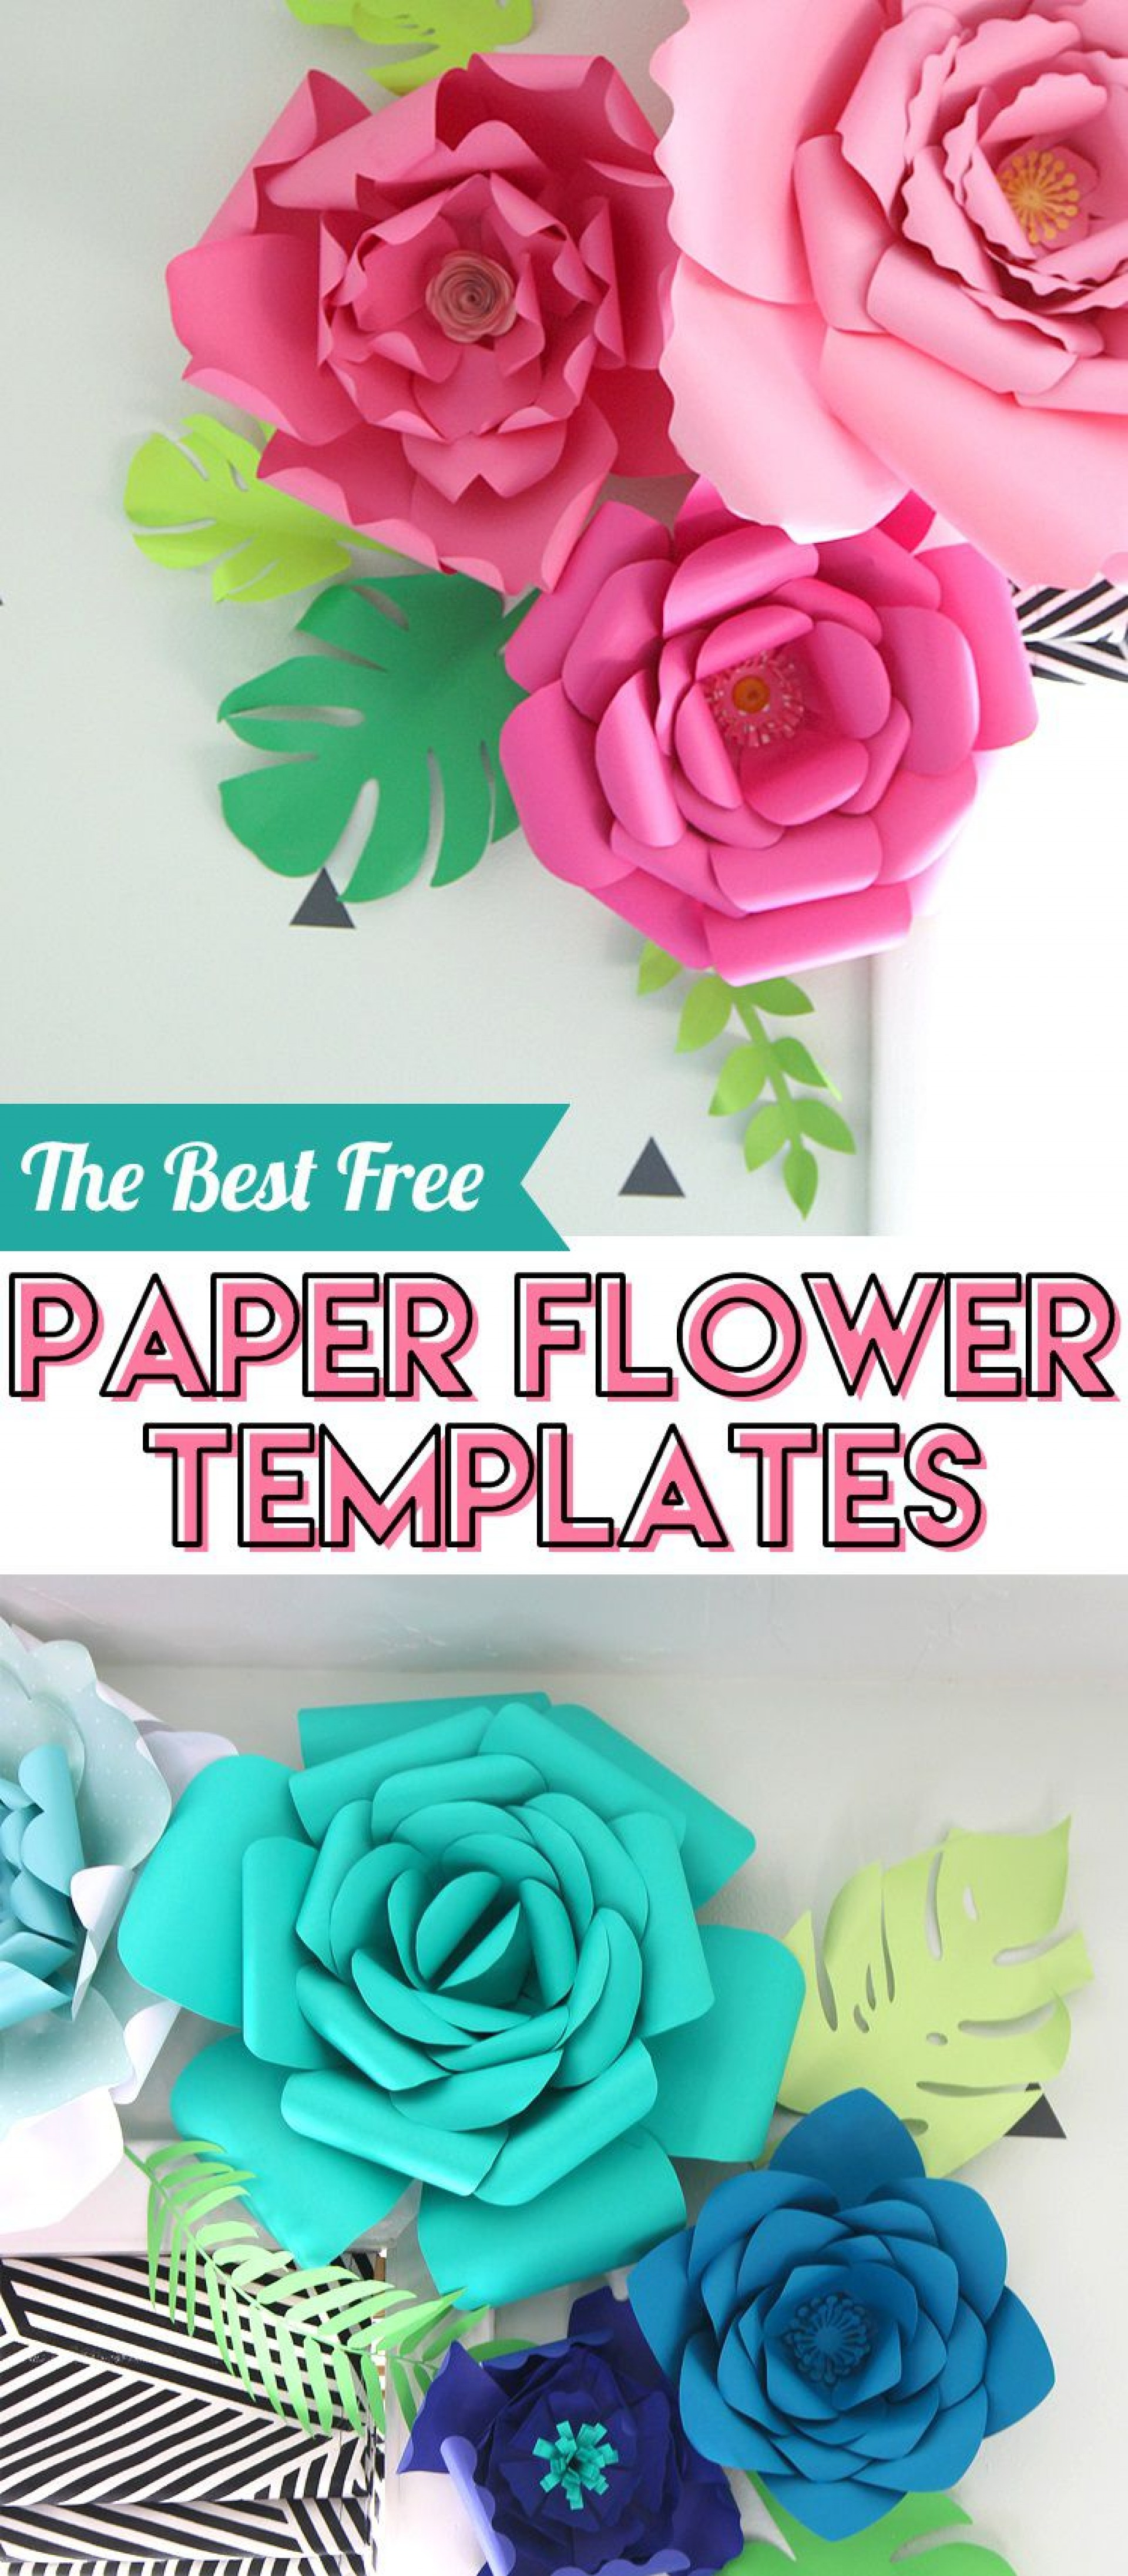 008 Remarkable Free Small Paper Flower Petal Template Photo  Templates1920